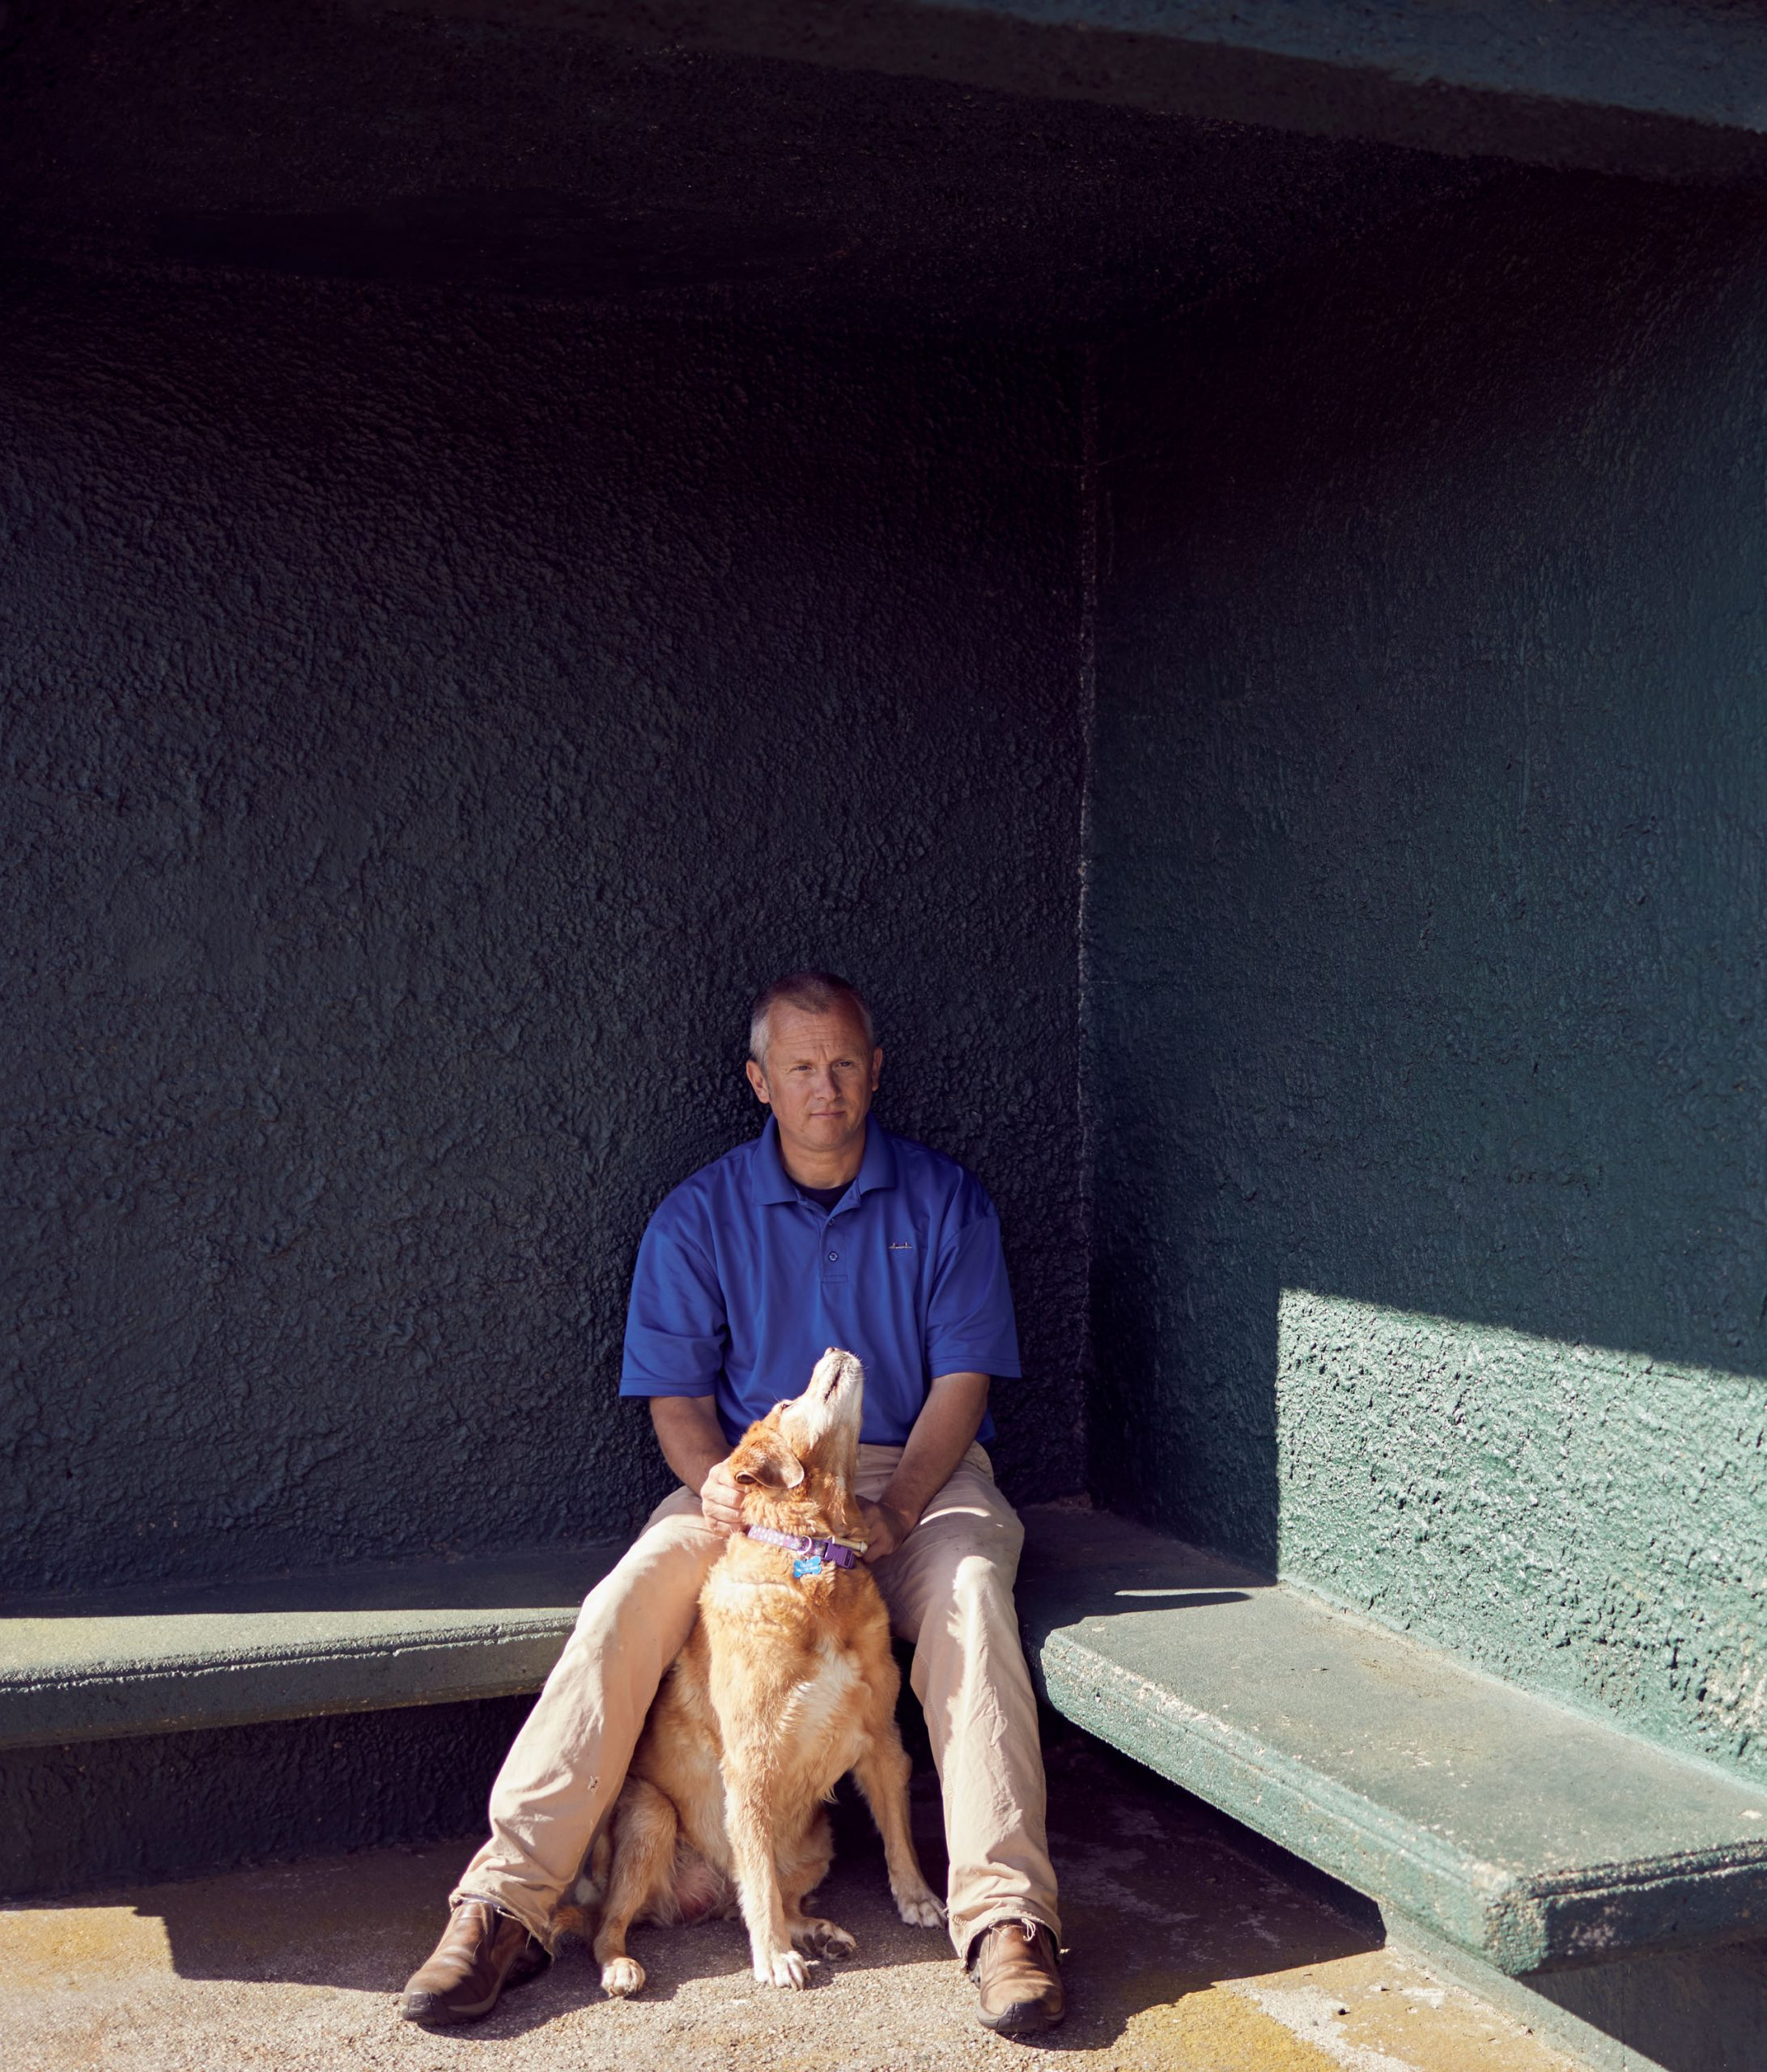 For the last 17 years, Russell Heller, known to the locals as Russ, has been the superintendent at William J. Devine Memorial Golf Course at Franklin Park, known to the locals as Franklin Park. The locals also know his faithful sidekick, Gisele. Photo by John Huet